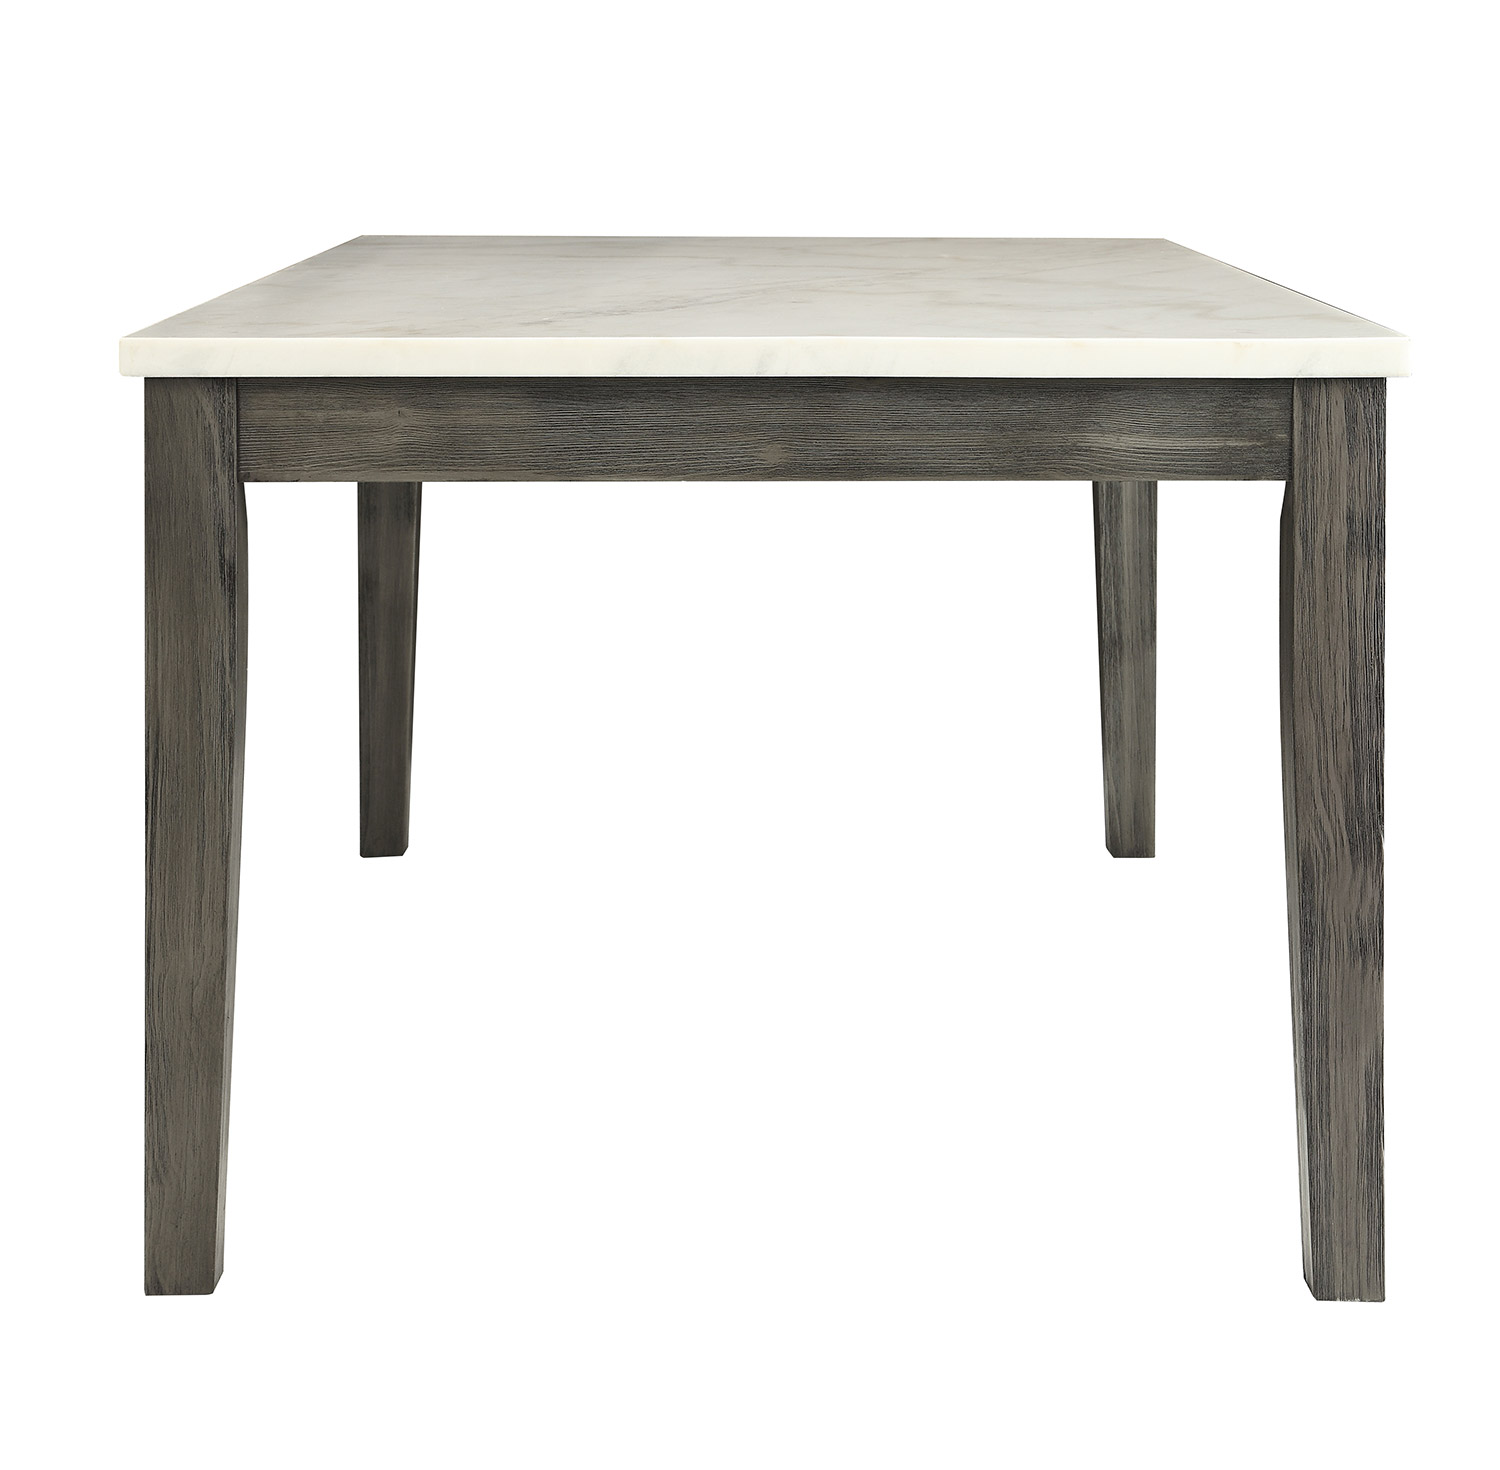 Acme Merel Dining Table - White Marble/Gray Oak